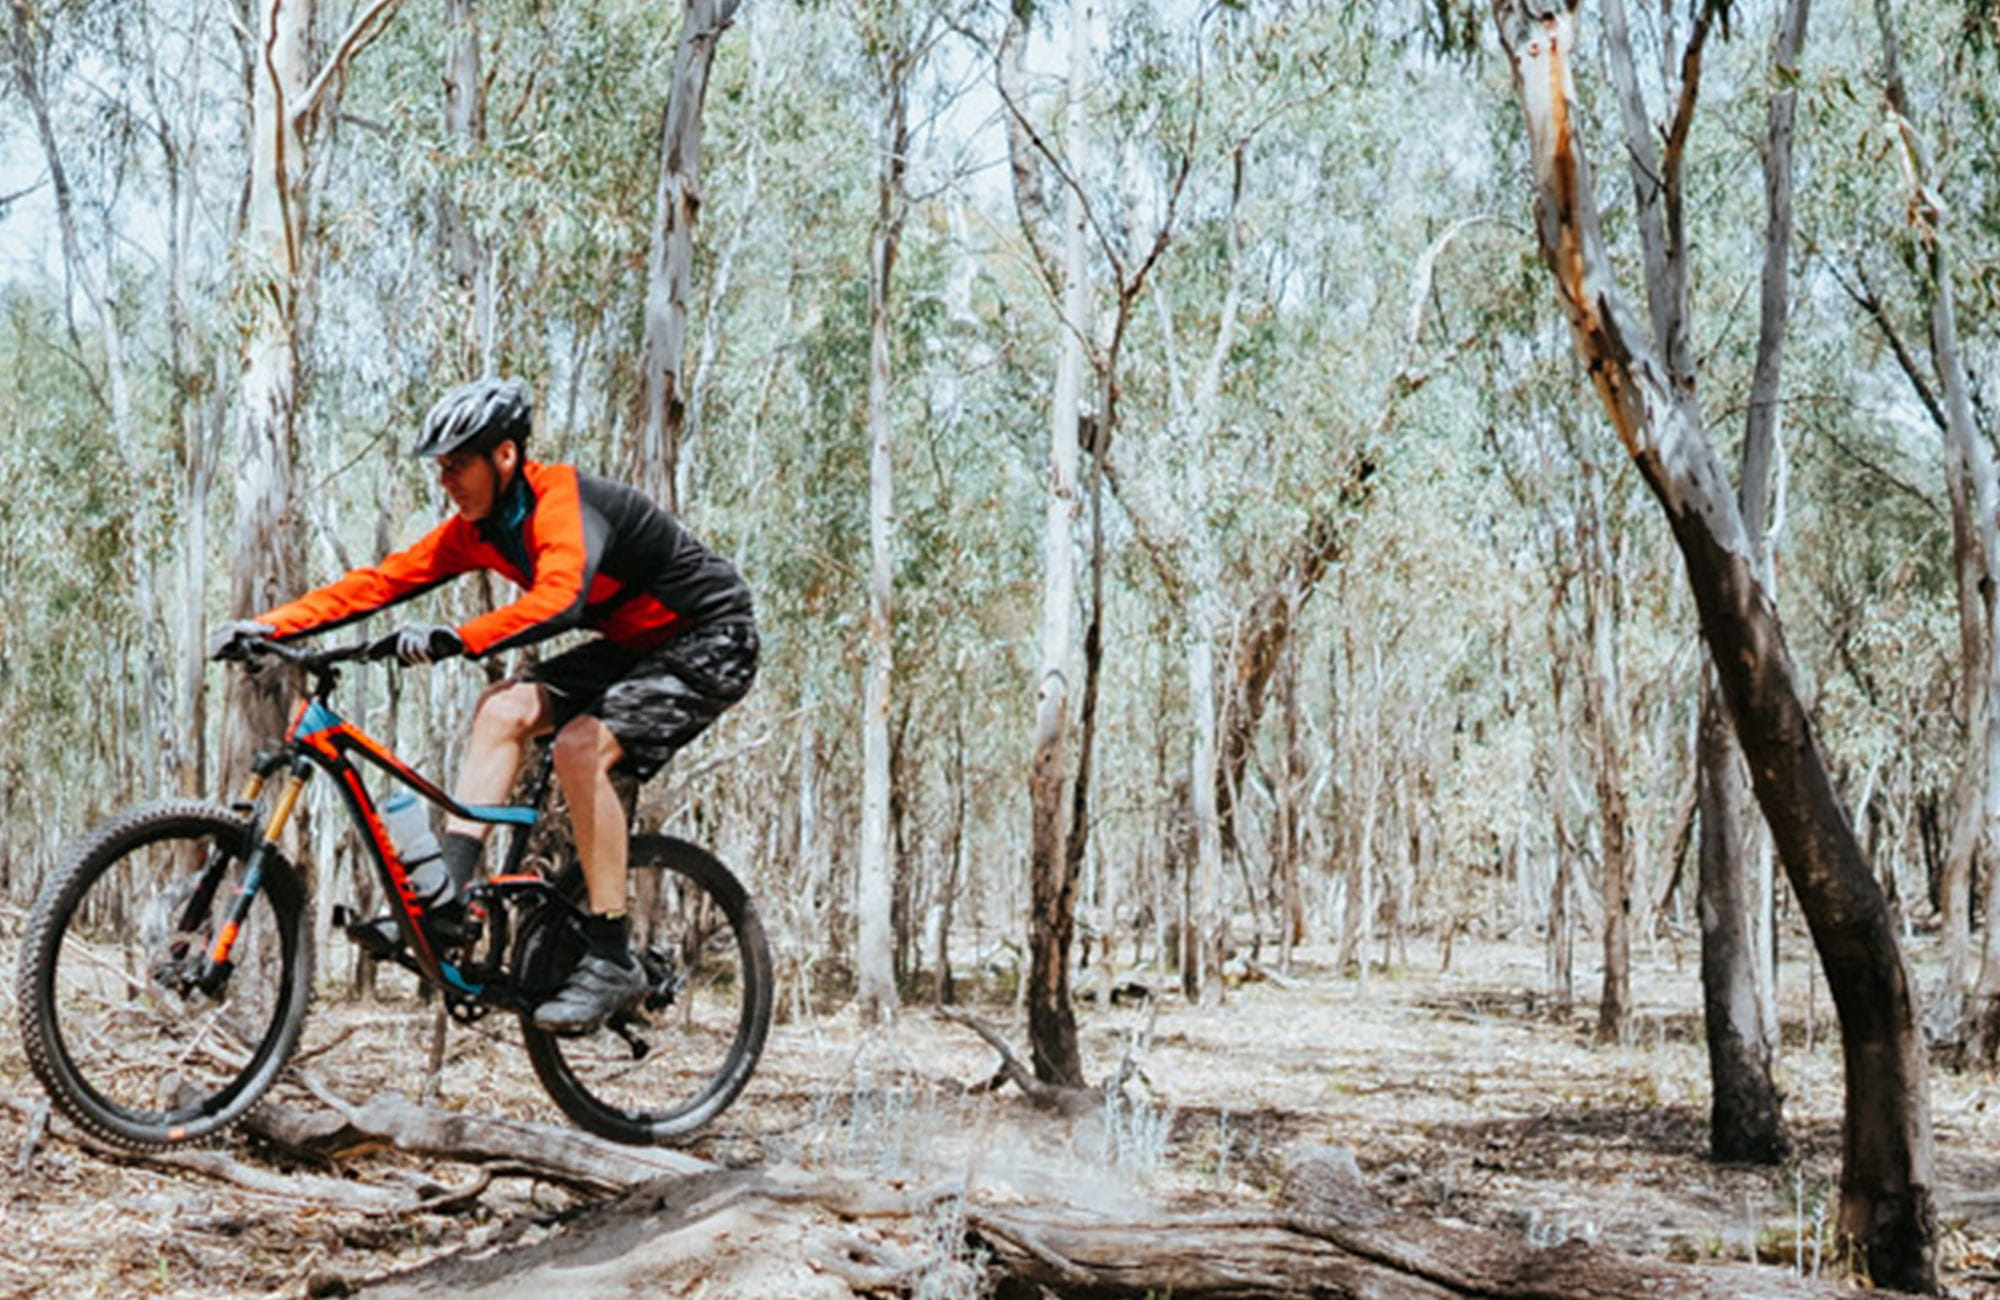 A bike rider cycles over a branch along Deniliquin mountain bike trails, Murray Valley Regional Park. Photo: Ain Raddik/Edward River Council.